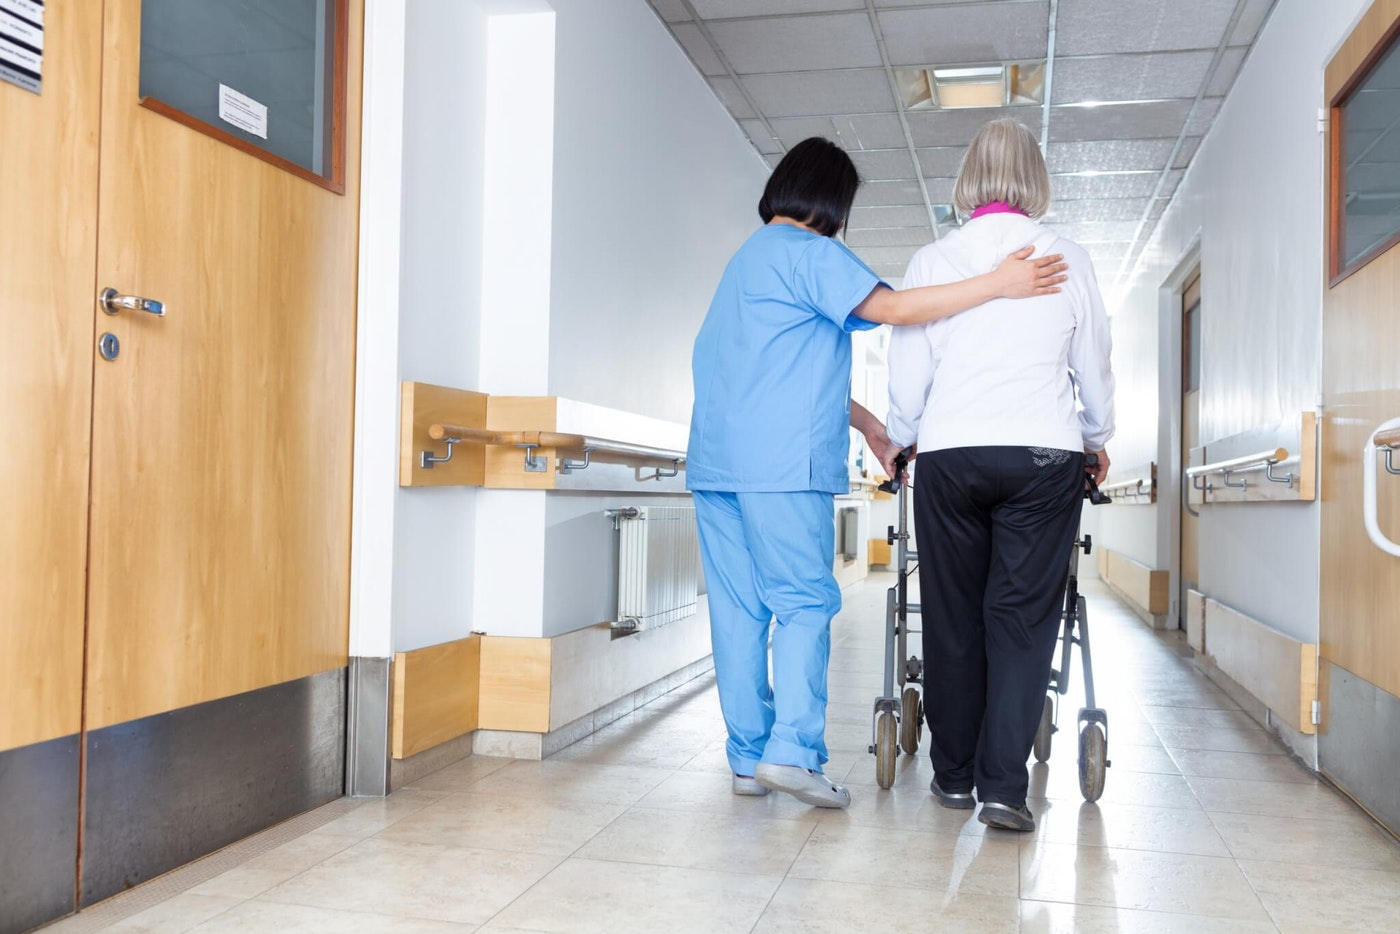 Nursing Home Residents May Soon Get Visits From Family